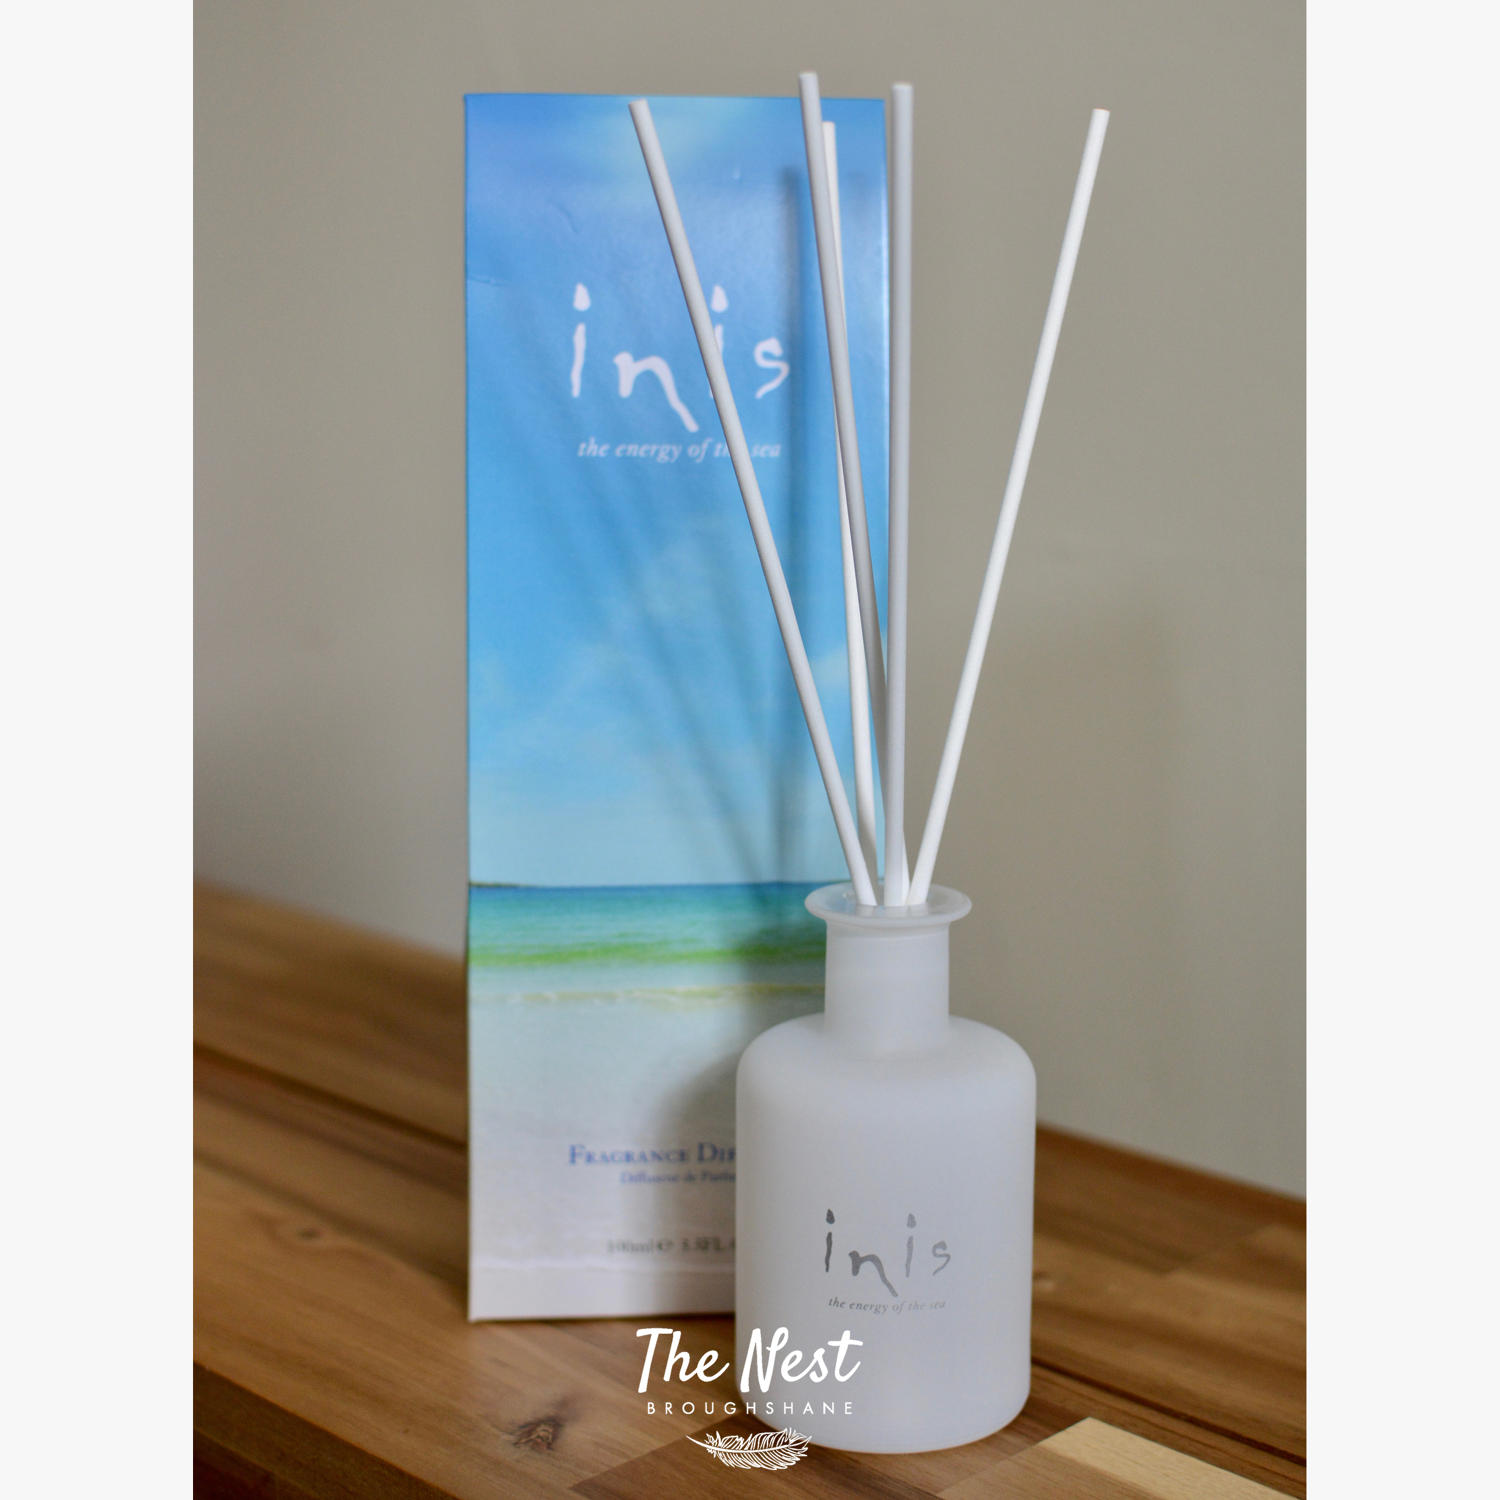 Inis - The Energy of The Sea - Room Diffuser